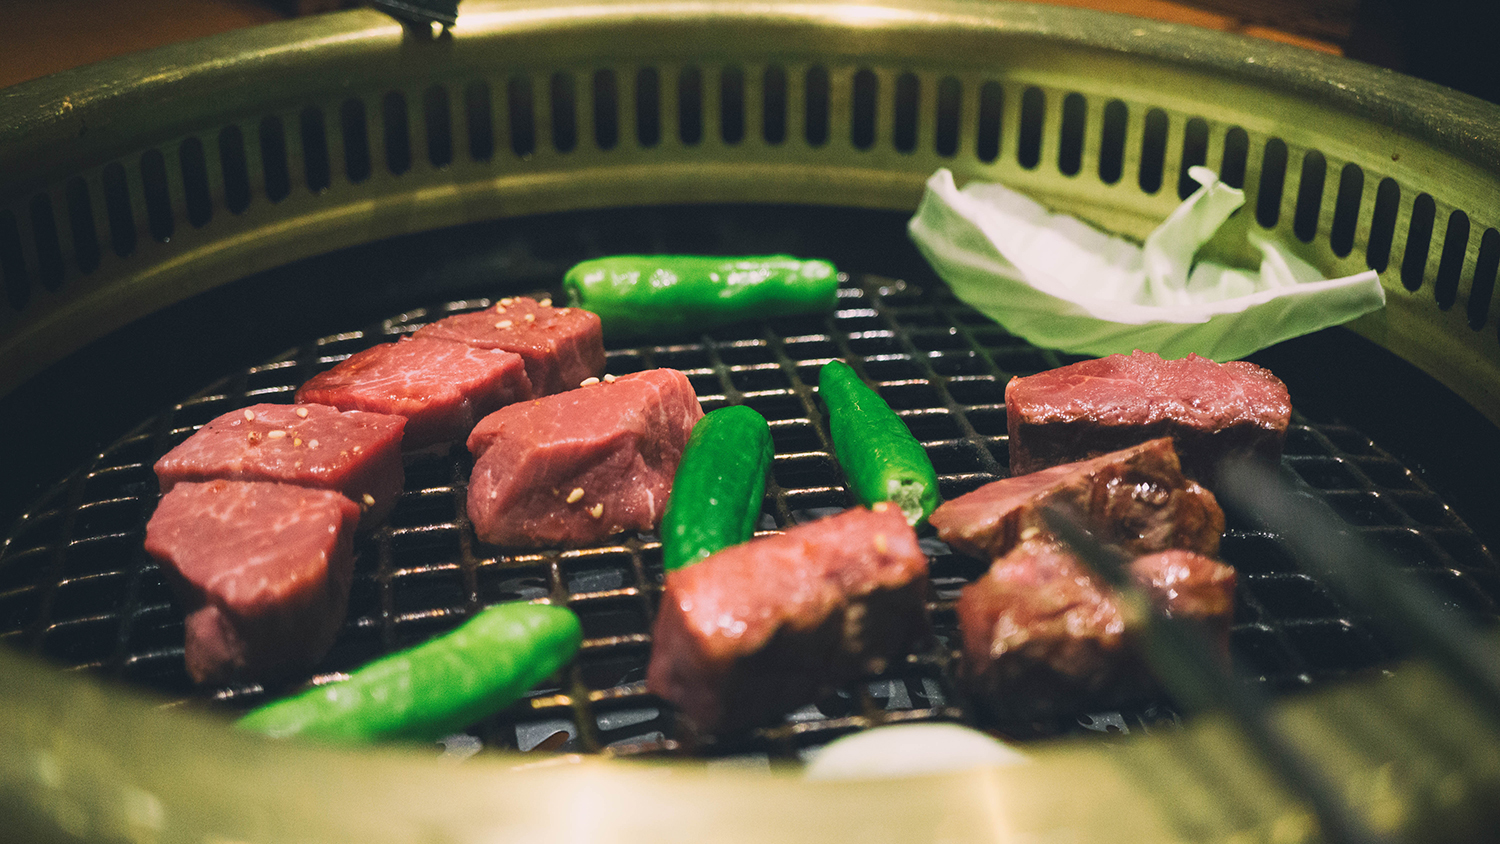 Grilling veggies and meat together.